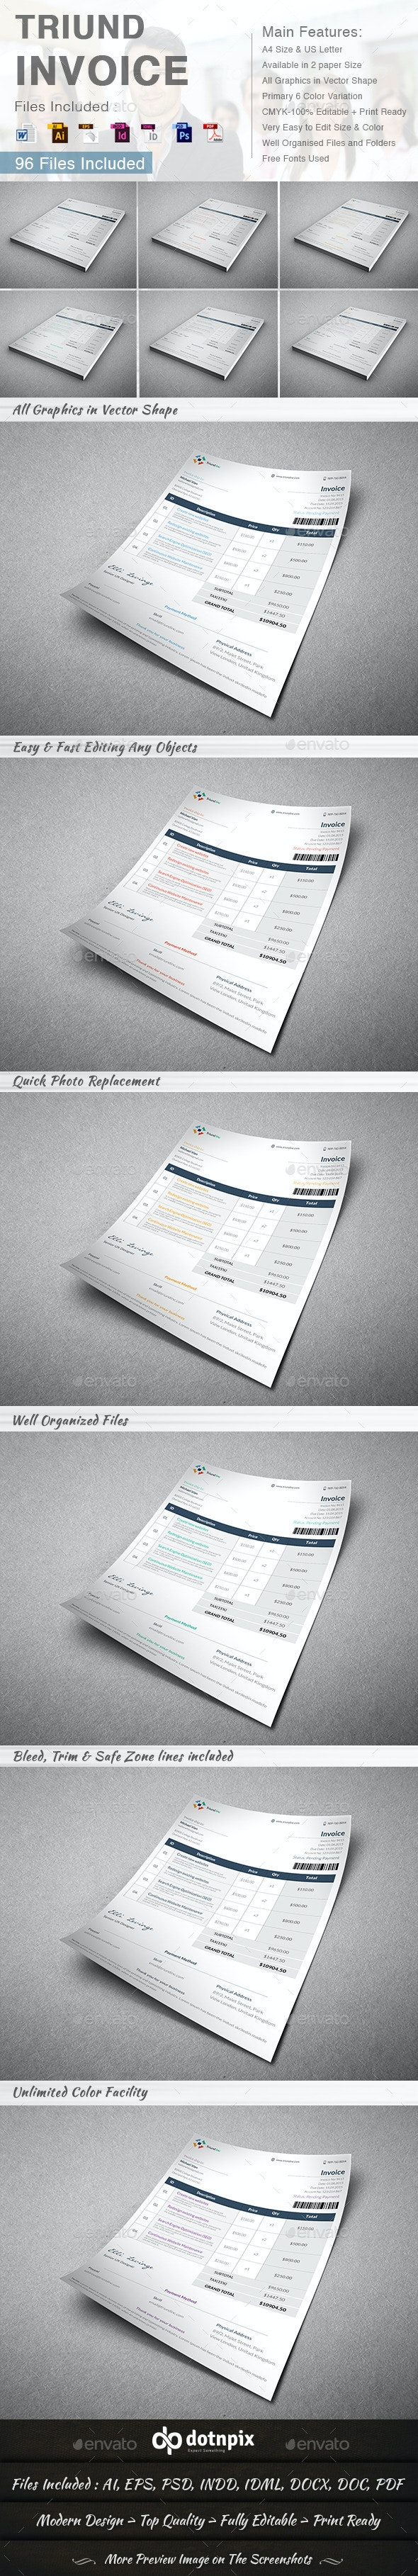 Triund Invoice - Proposals & Invoices Stationery